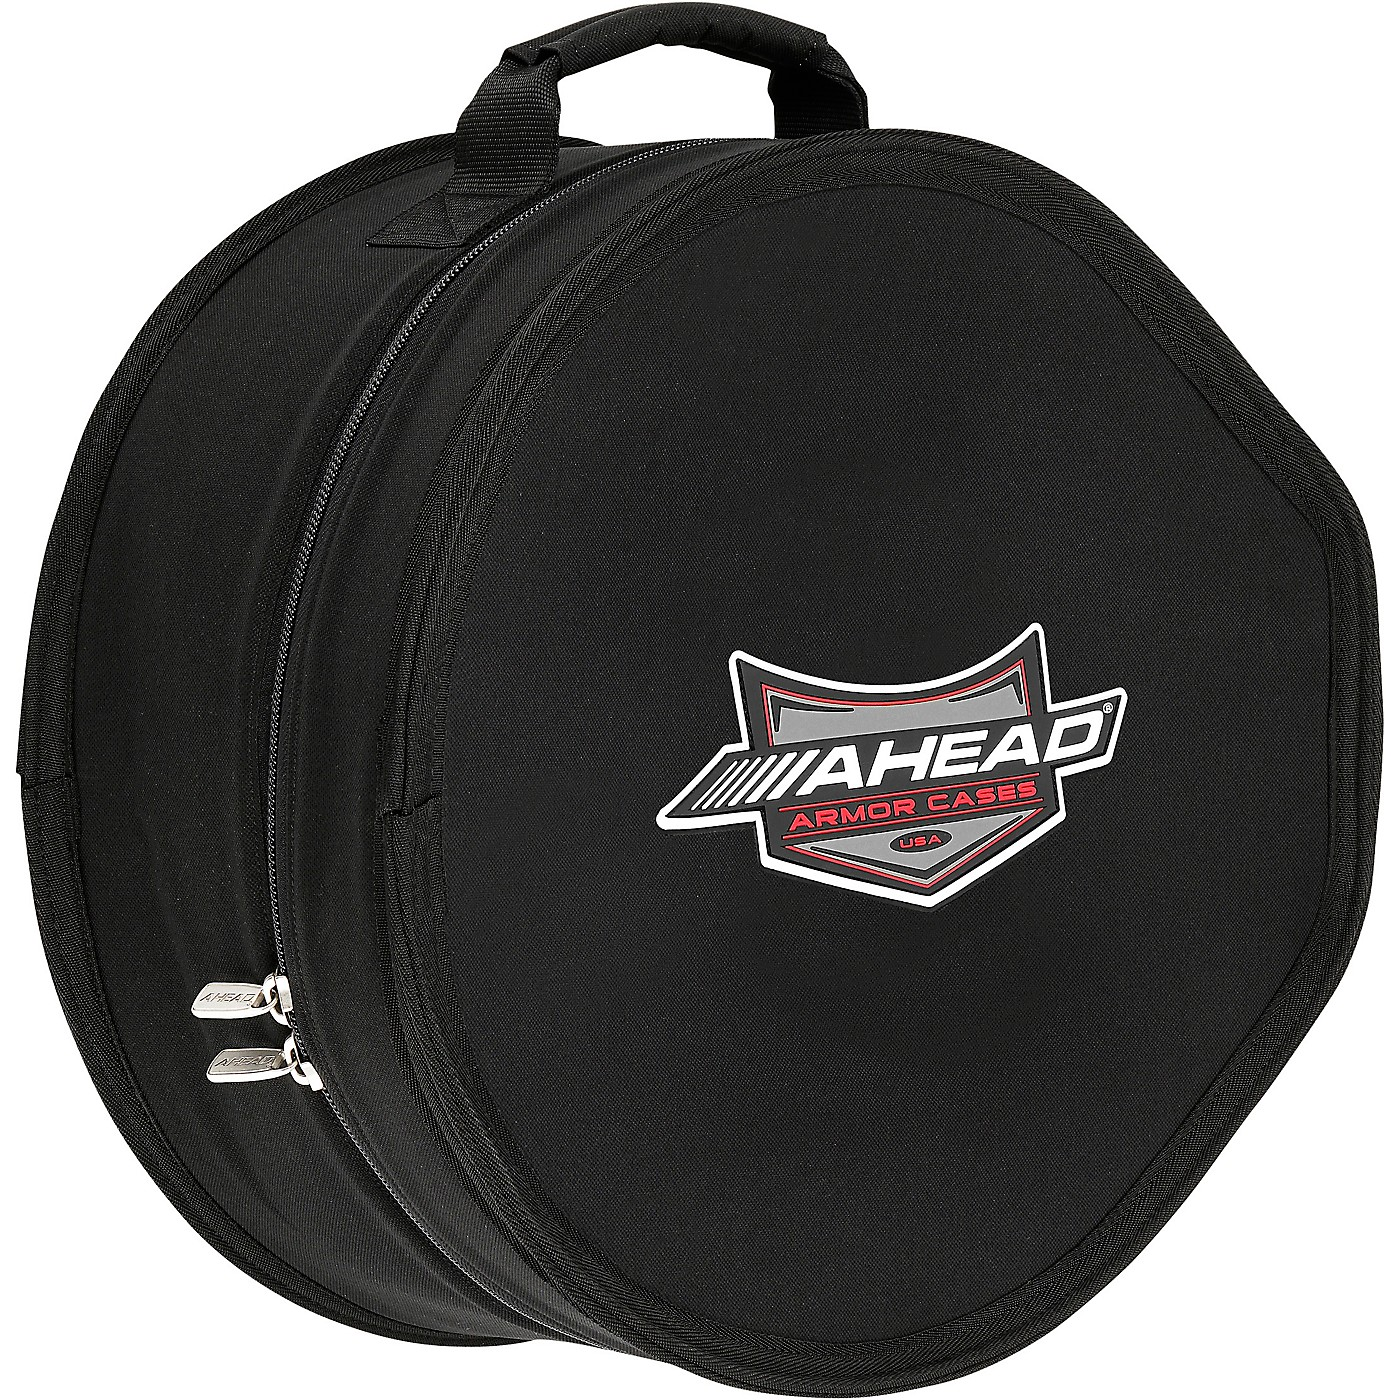 Ahead Snare Drum Case with Cutout for Snare Rail thumbnail